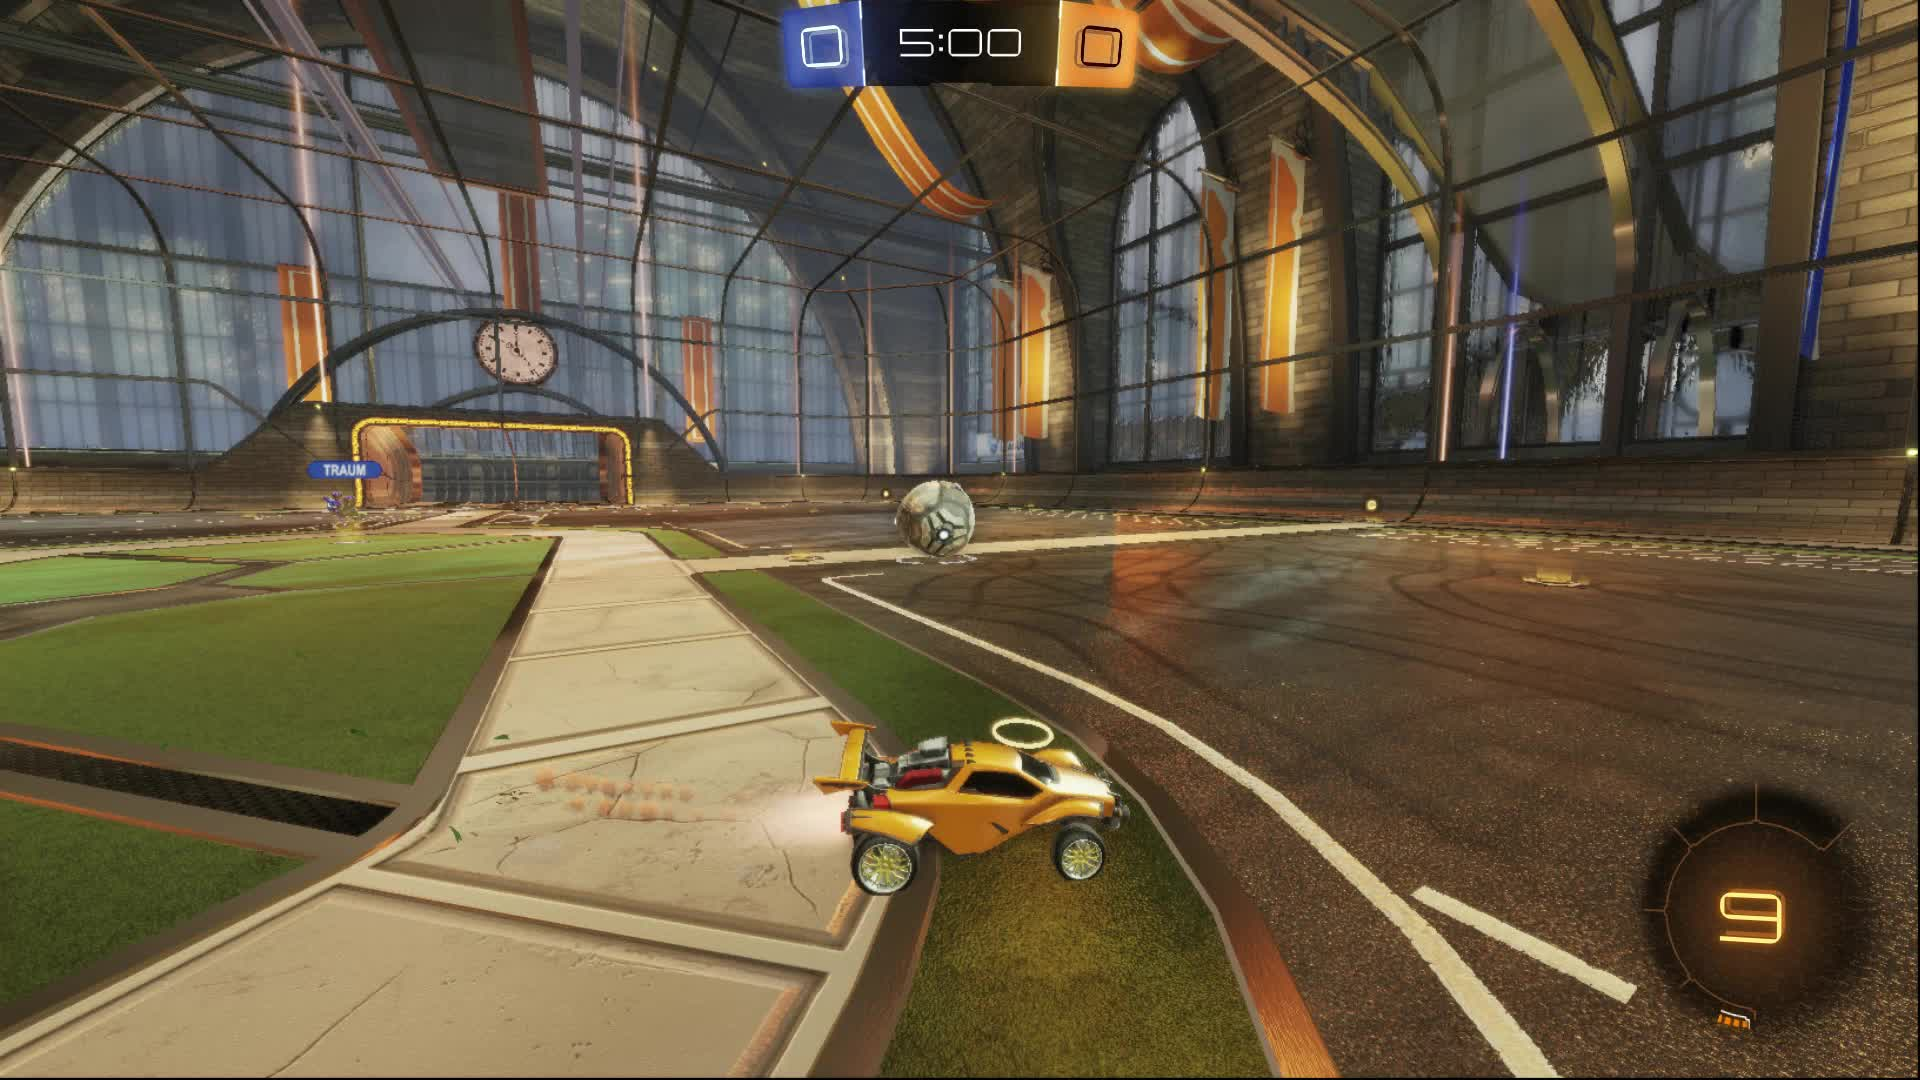 RocketLeague, videos (16) GIFs